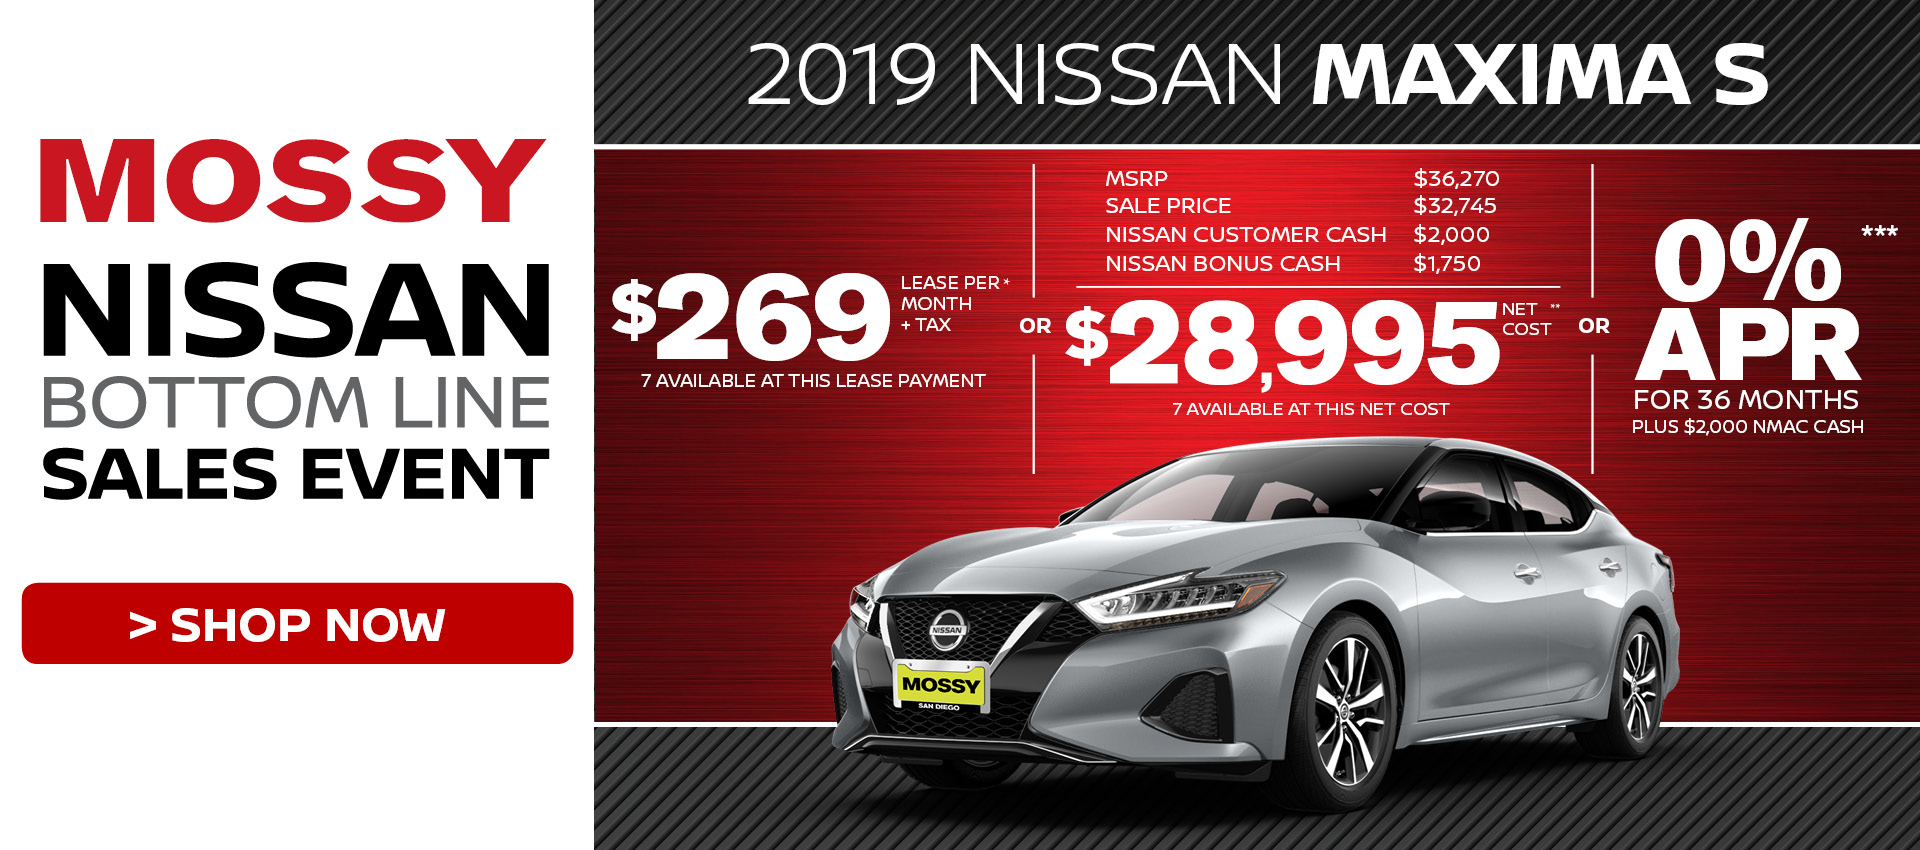 Mossy Nissan - Nissan Maxima $28,995 Purchase HP